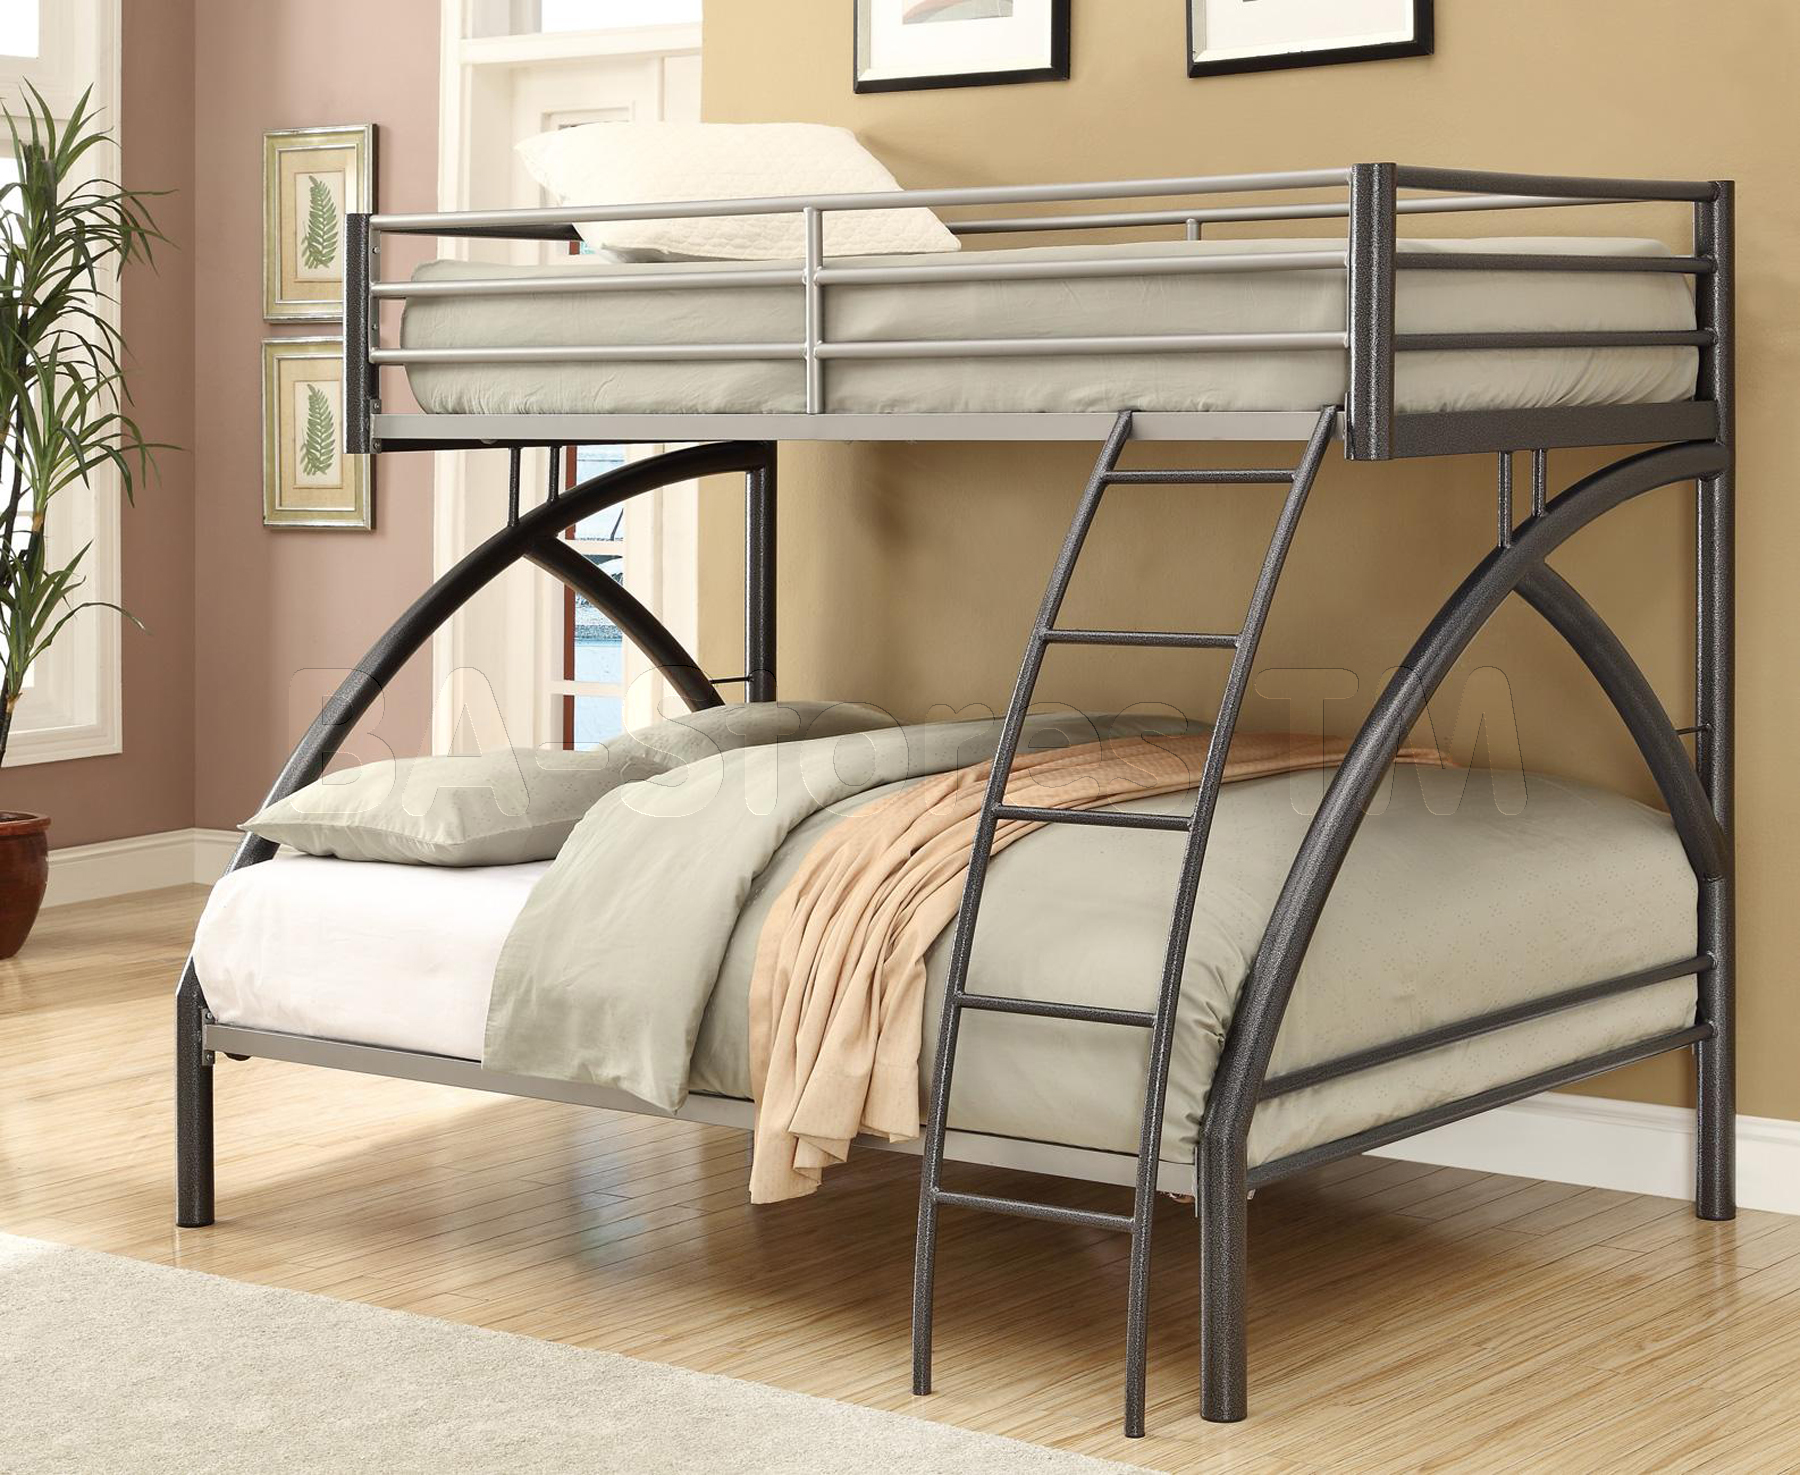 Ikea Twin Bed Frames Homesfeed